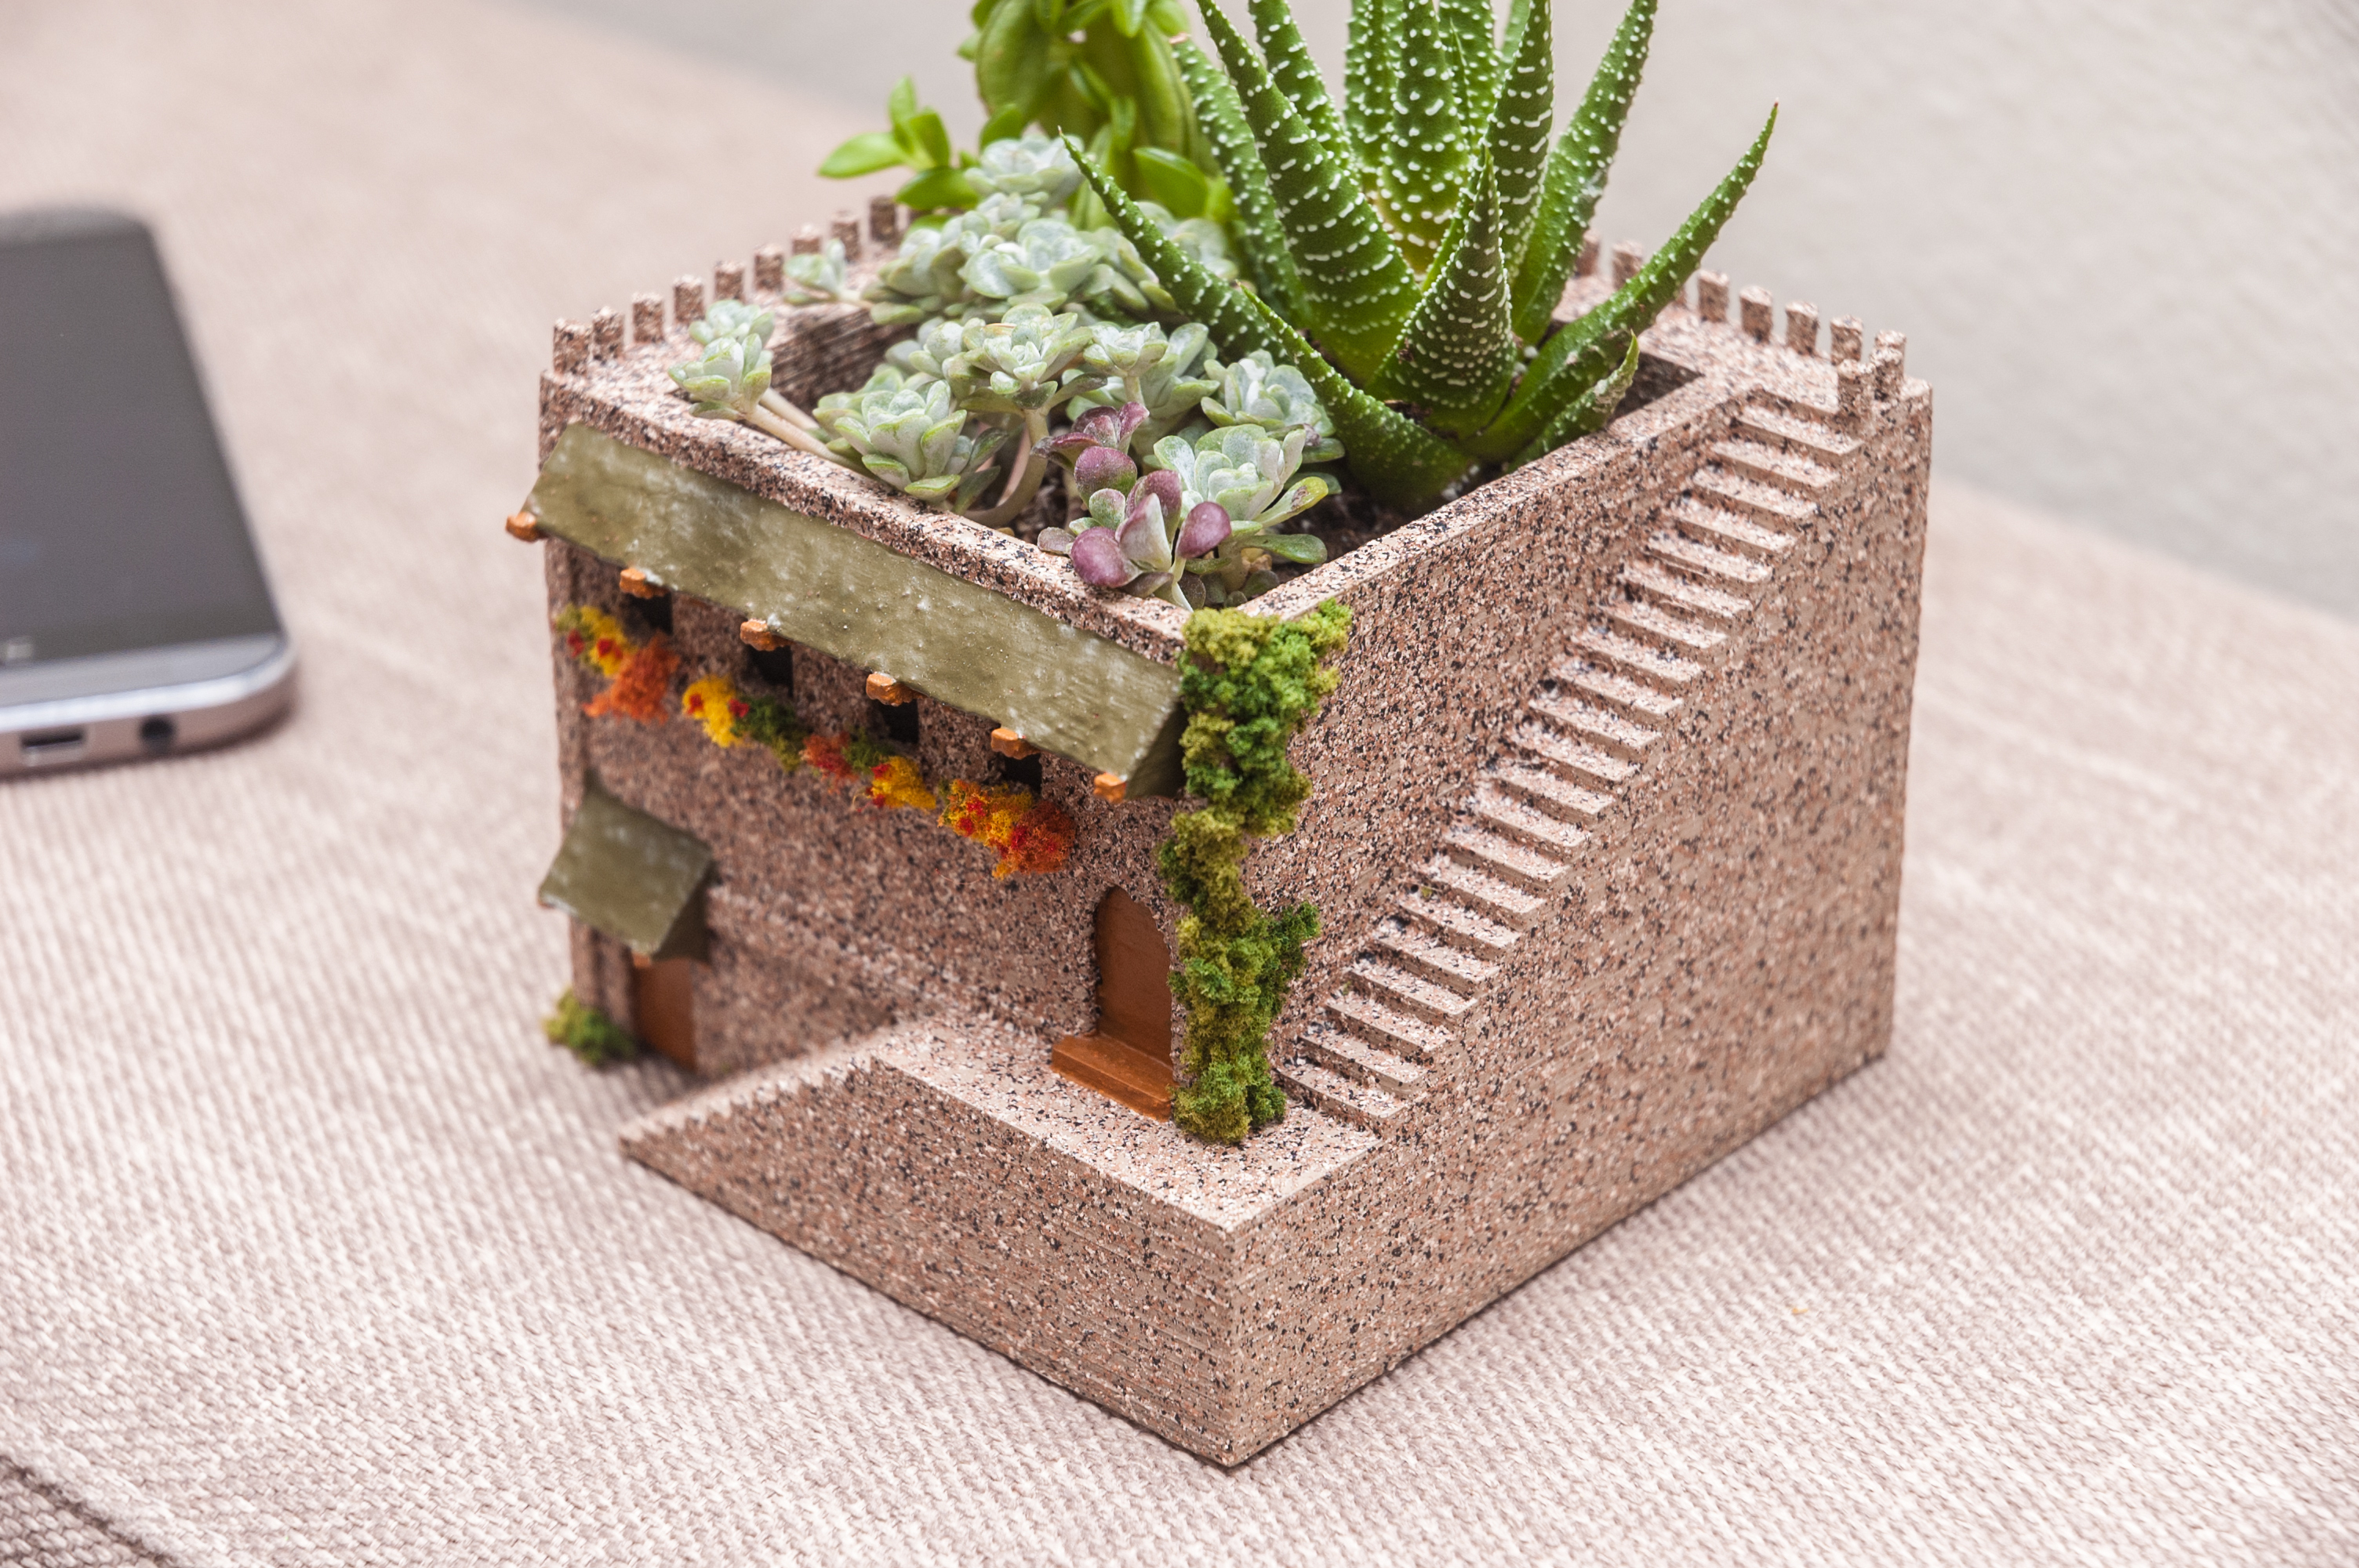 3d printed mini middle eastern villa planter by yuriysklyar pinshape